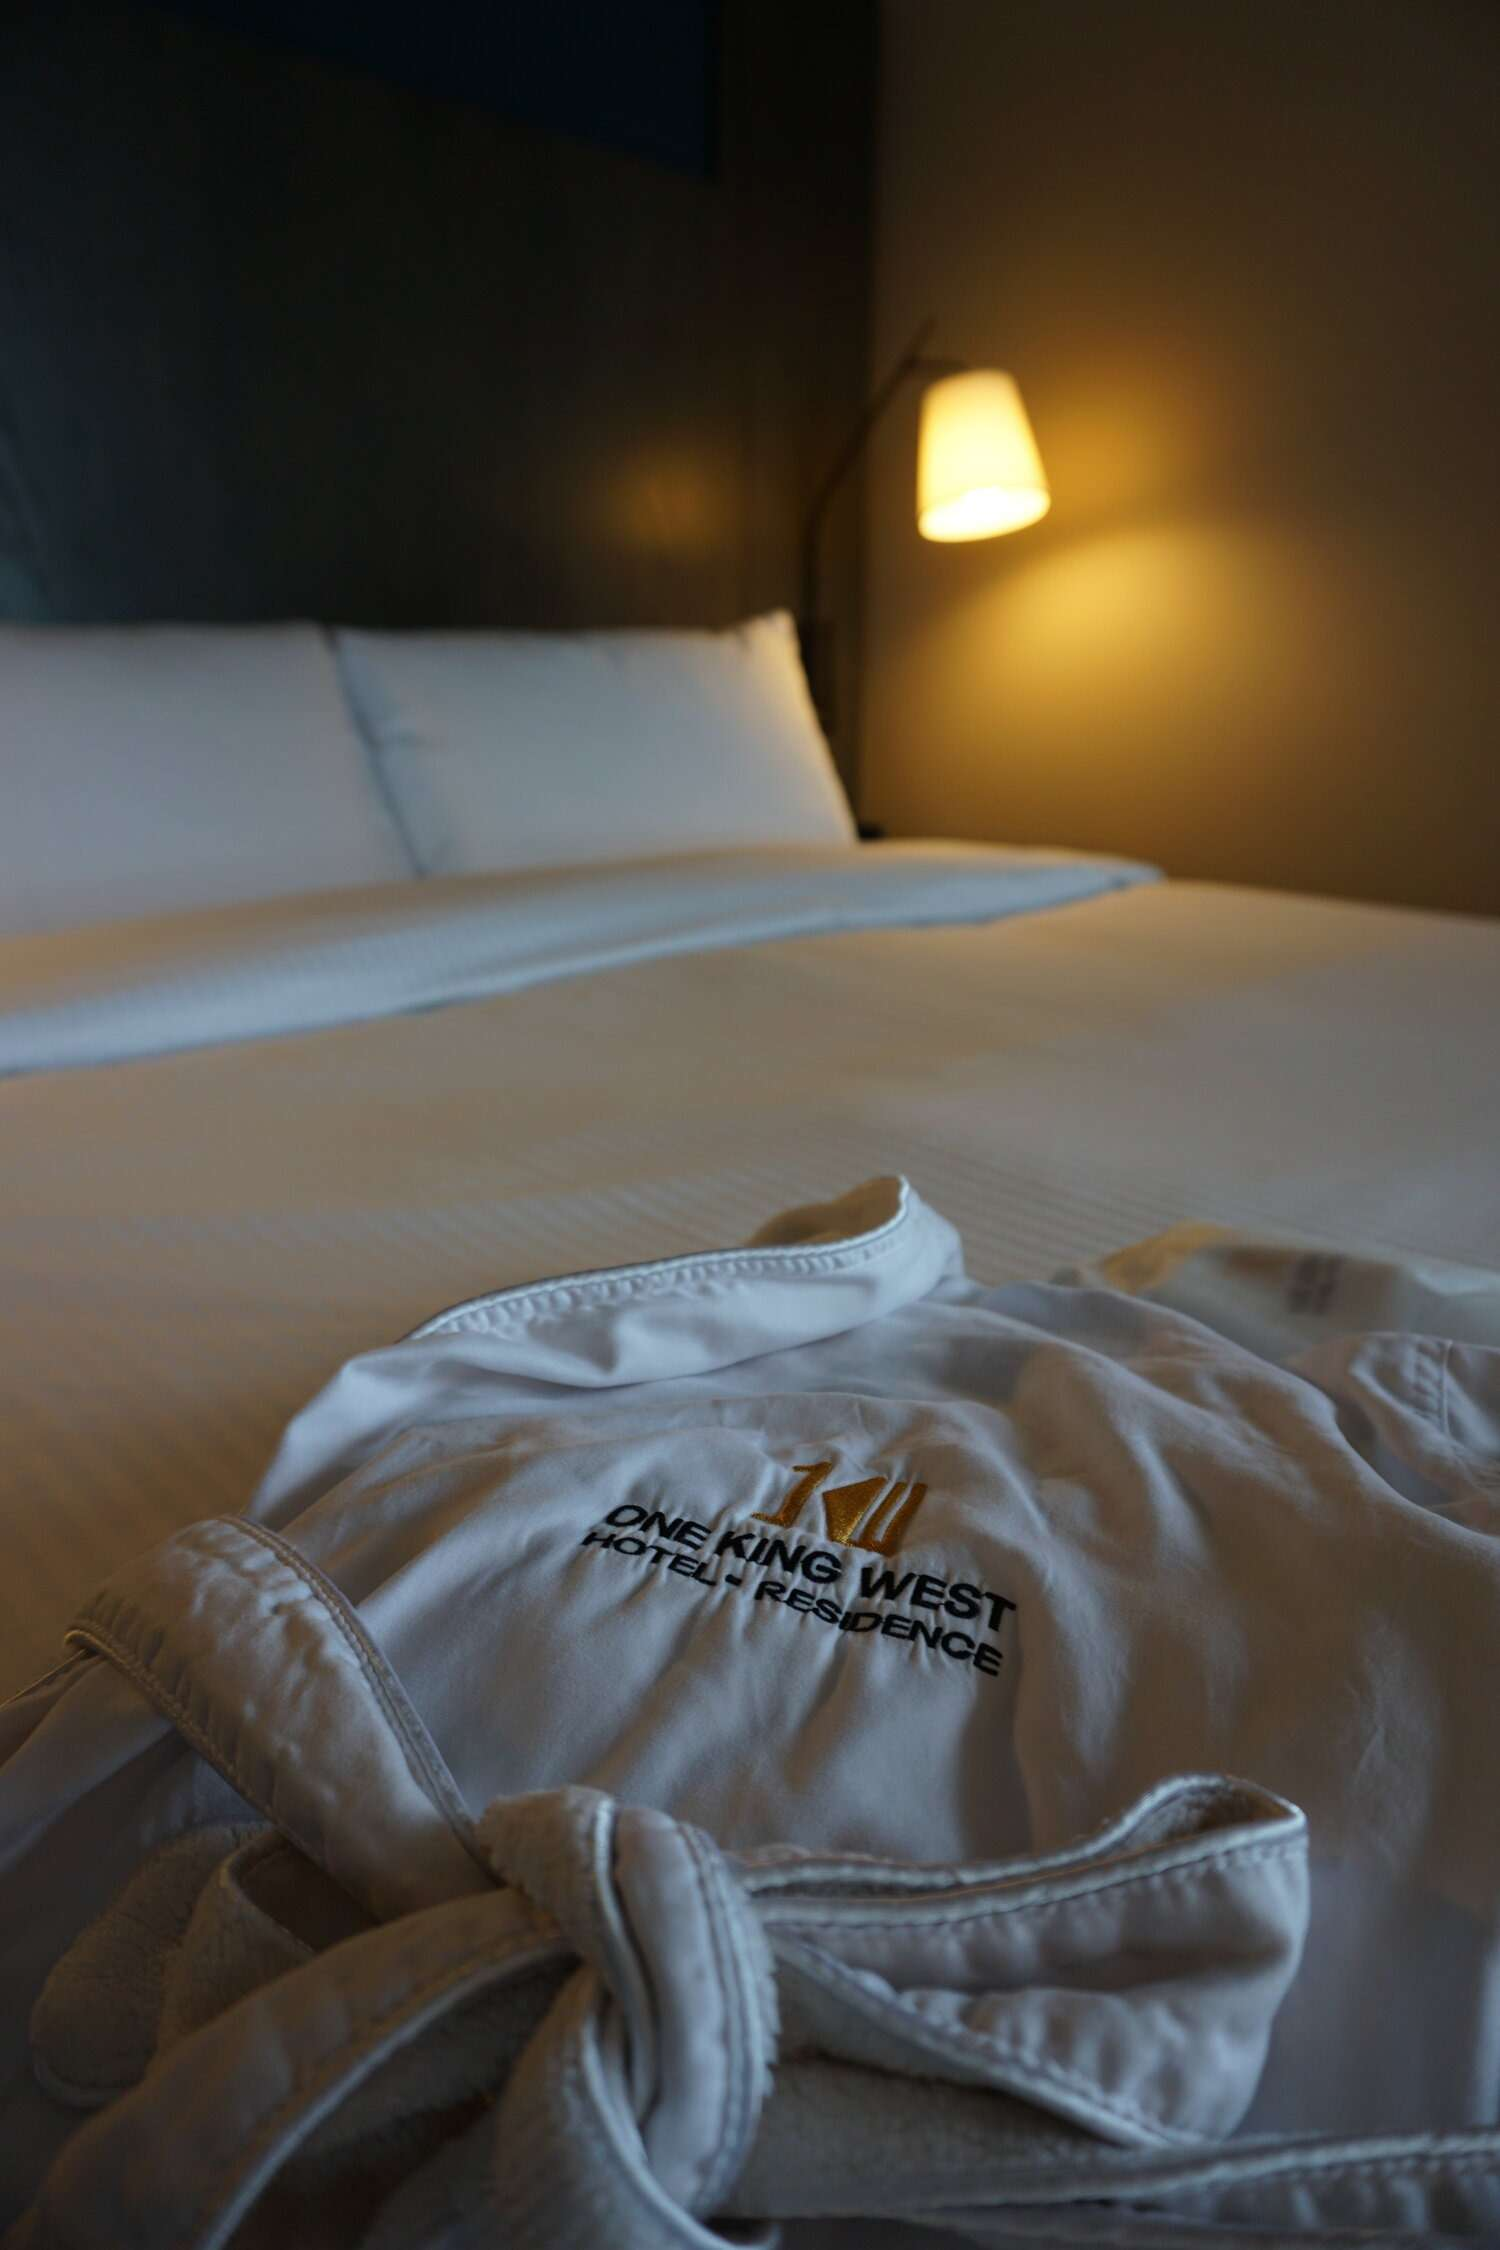 Hotel robe in bed at One King West hotel room